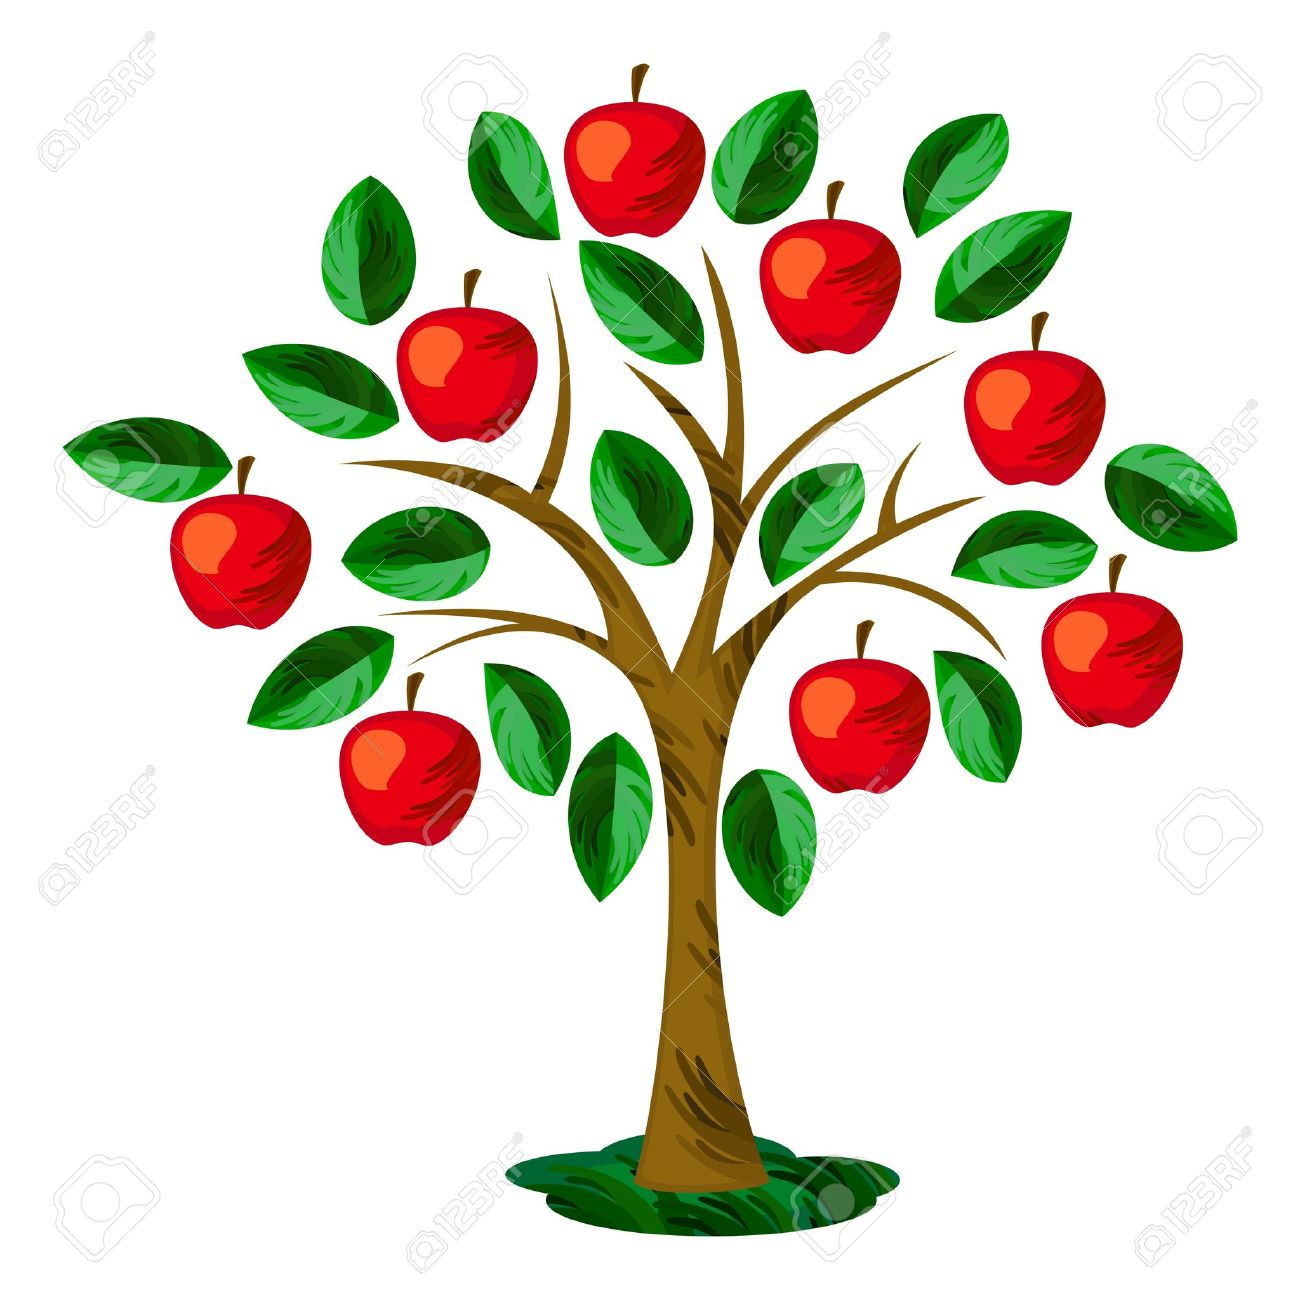 Ordinary Tree With Fruits Part - 11: Isolated Apple Tree With Leaves And Fruits Stock Vector - 18845688